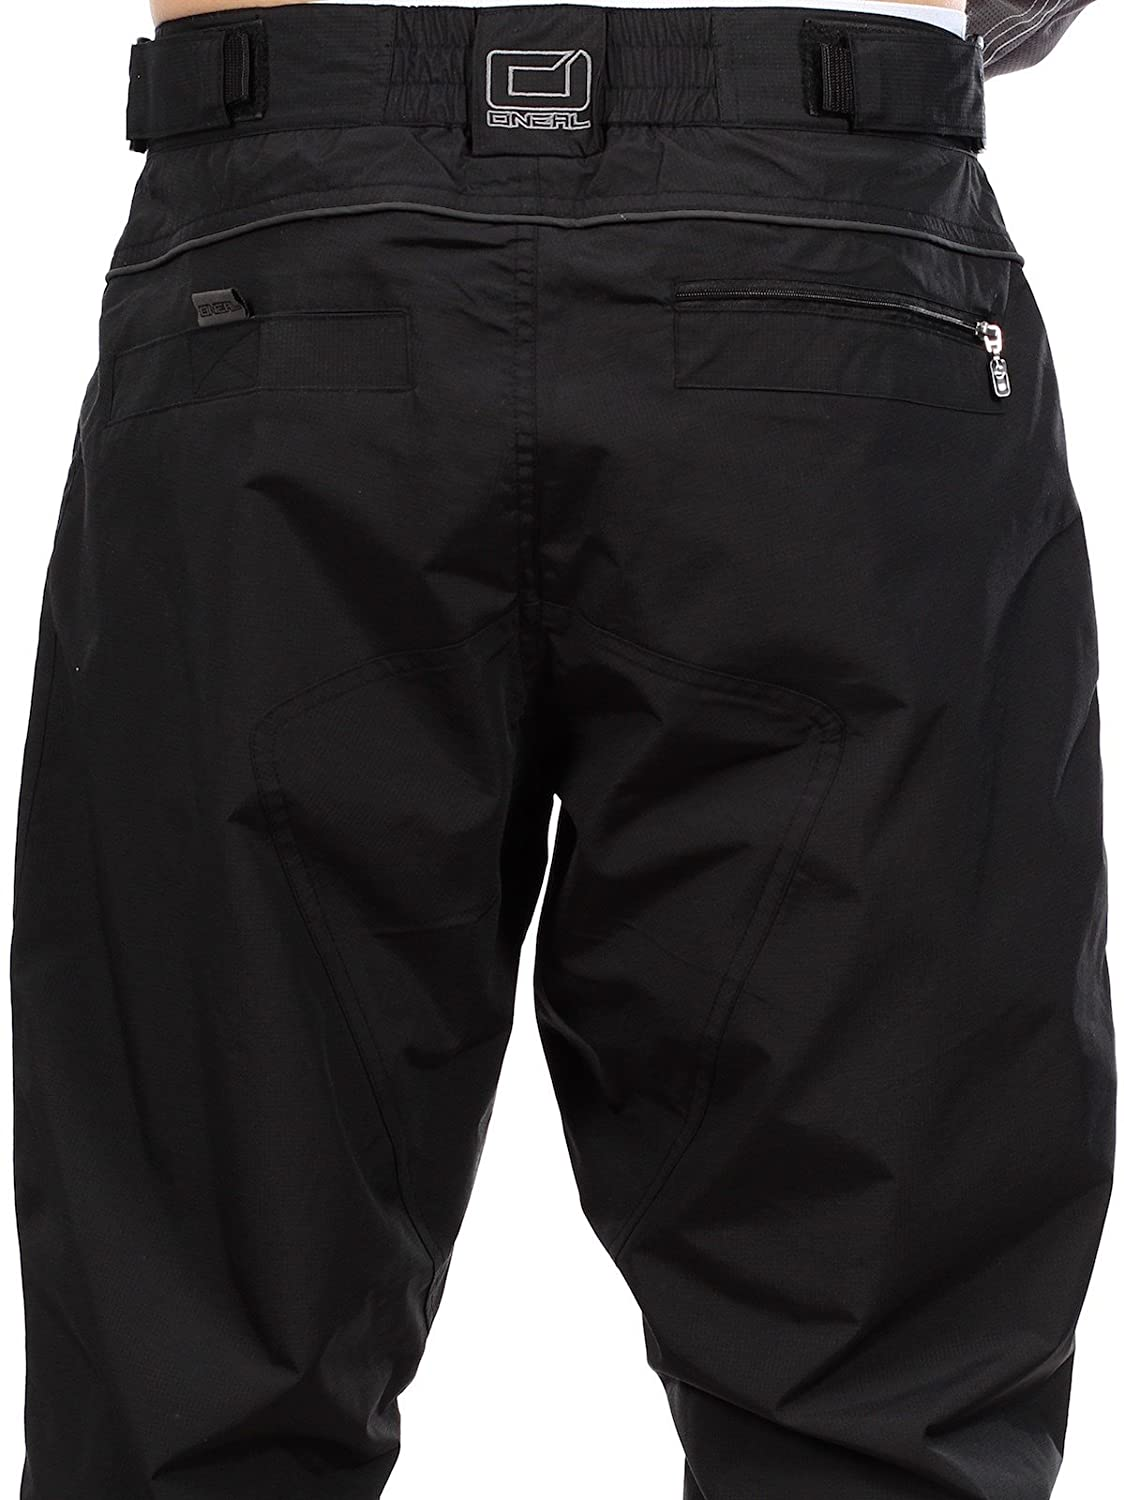 O Neal Predator Iii Freeride All Mountain Pant Black Oneal